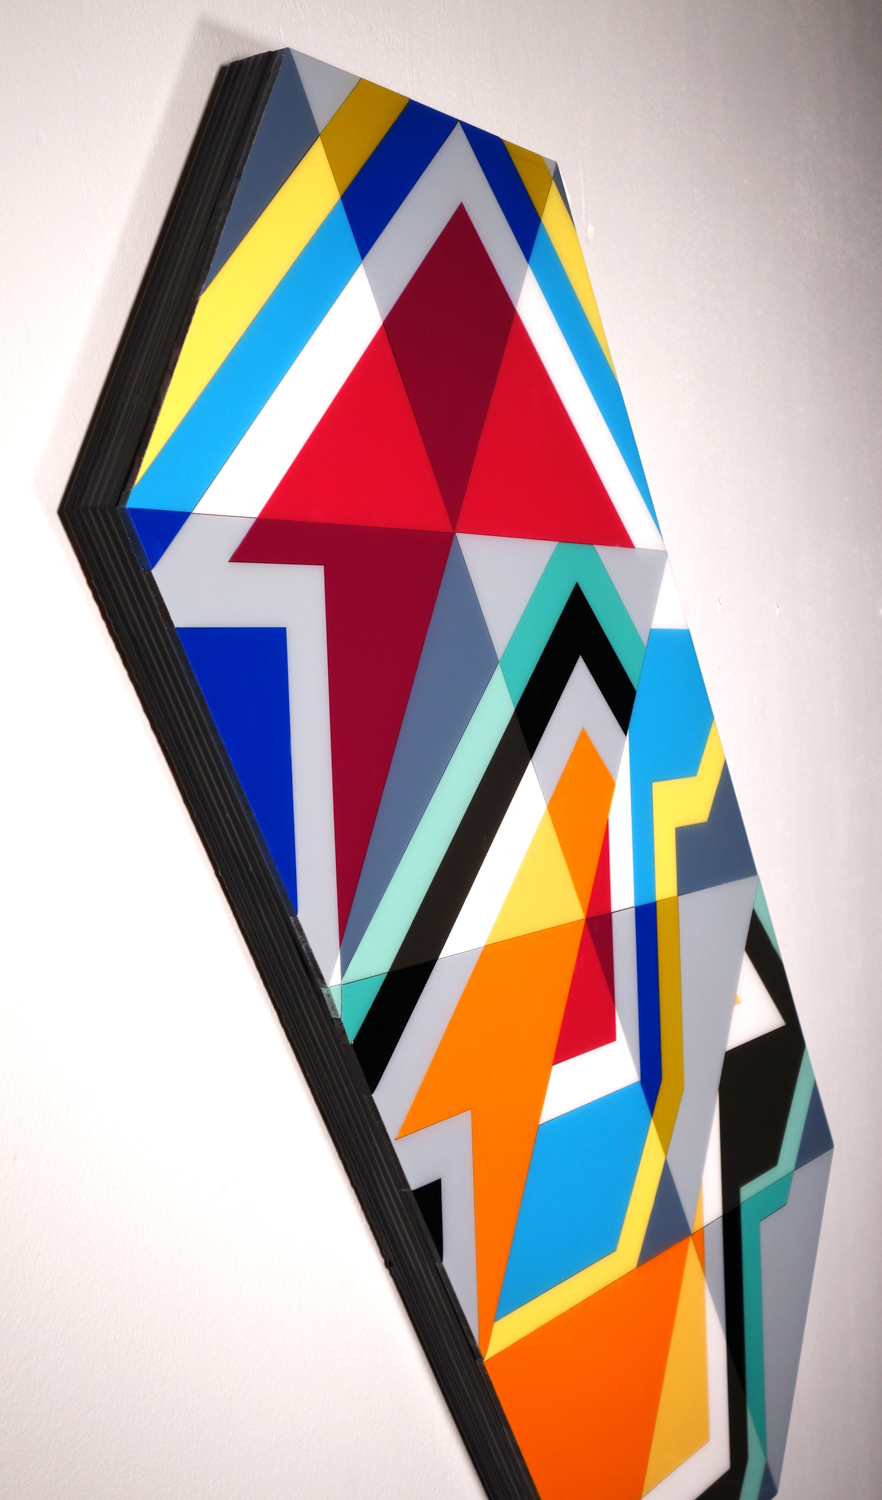 Tavar Zawacki - DOUBLE TAKE (POLYGON), 2018